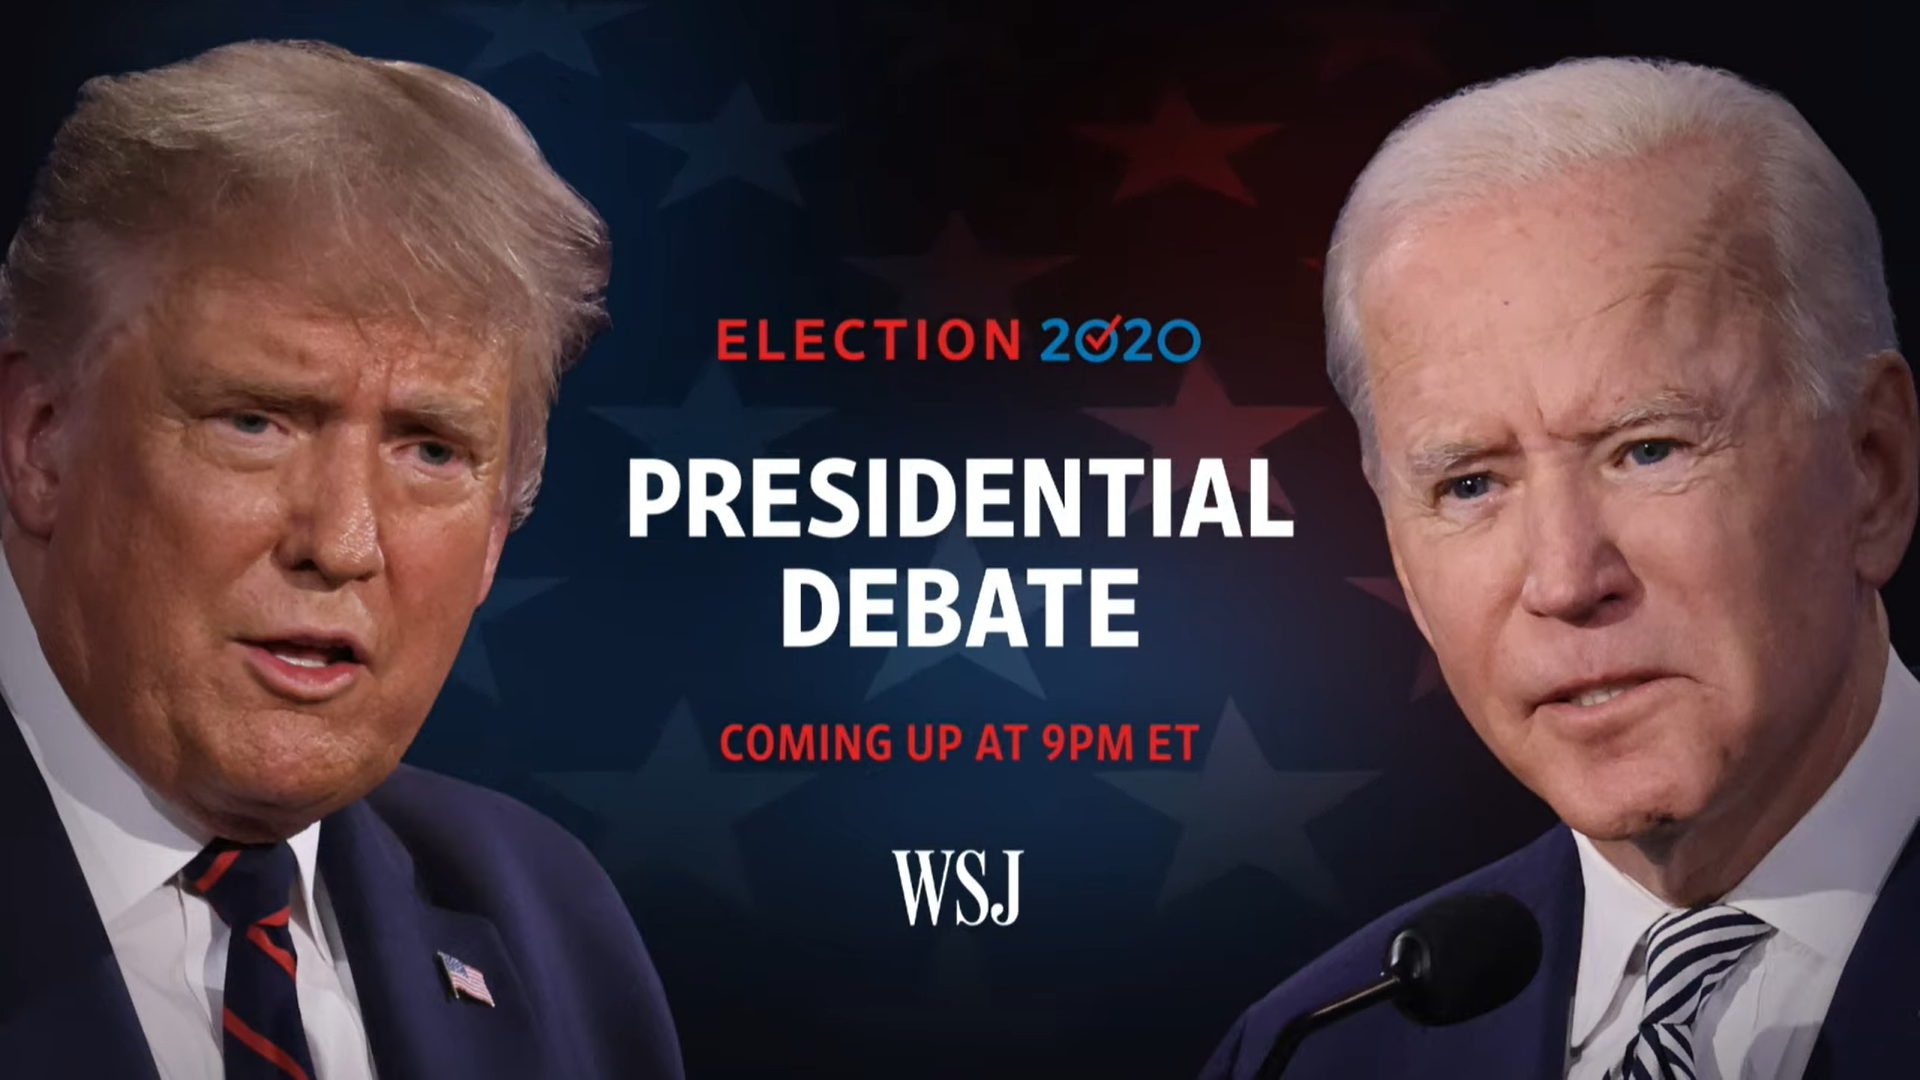 Full Debate: President Trump and Joe Biden Square Off for Final Time Ahead of Election Image'